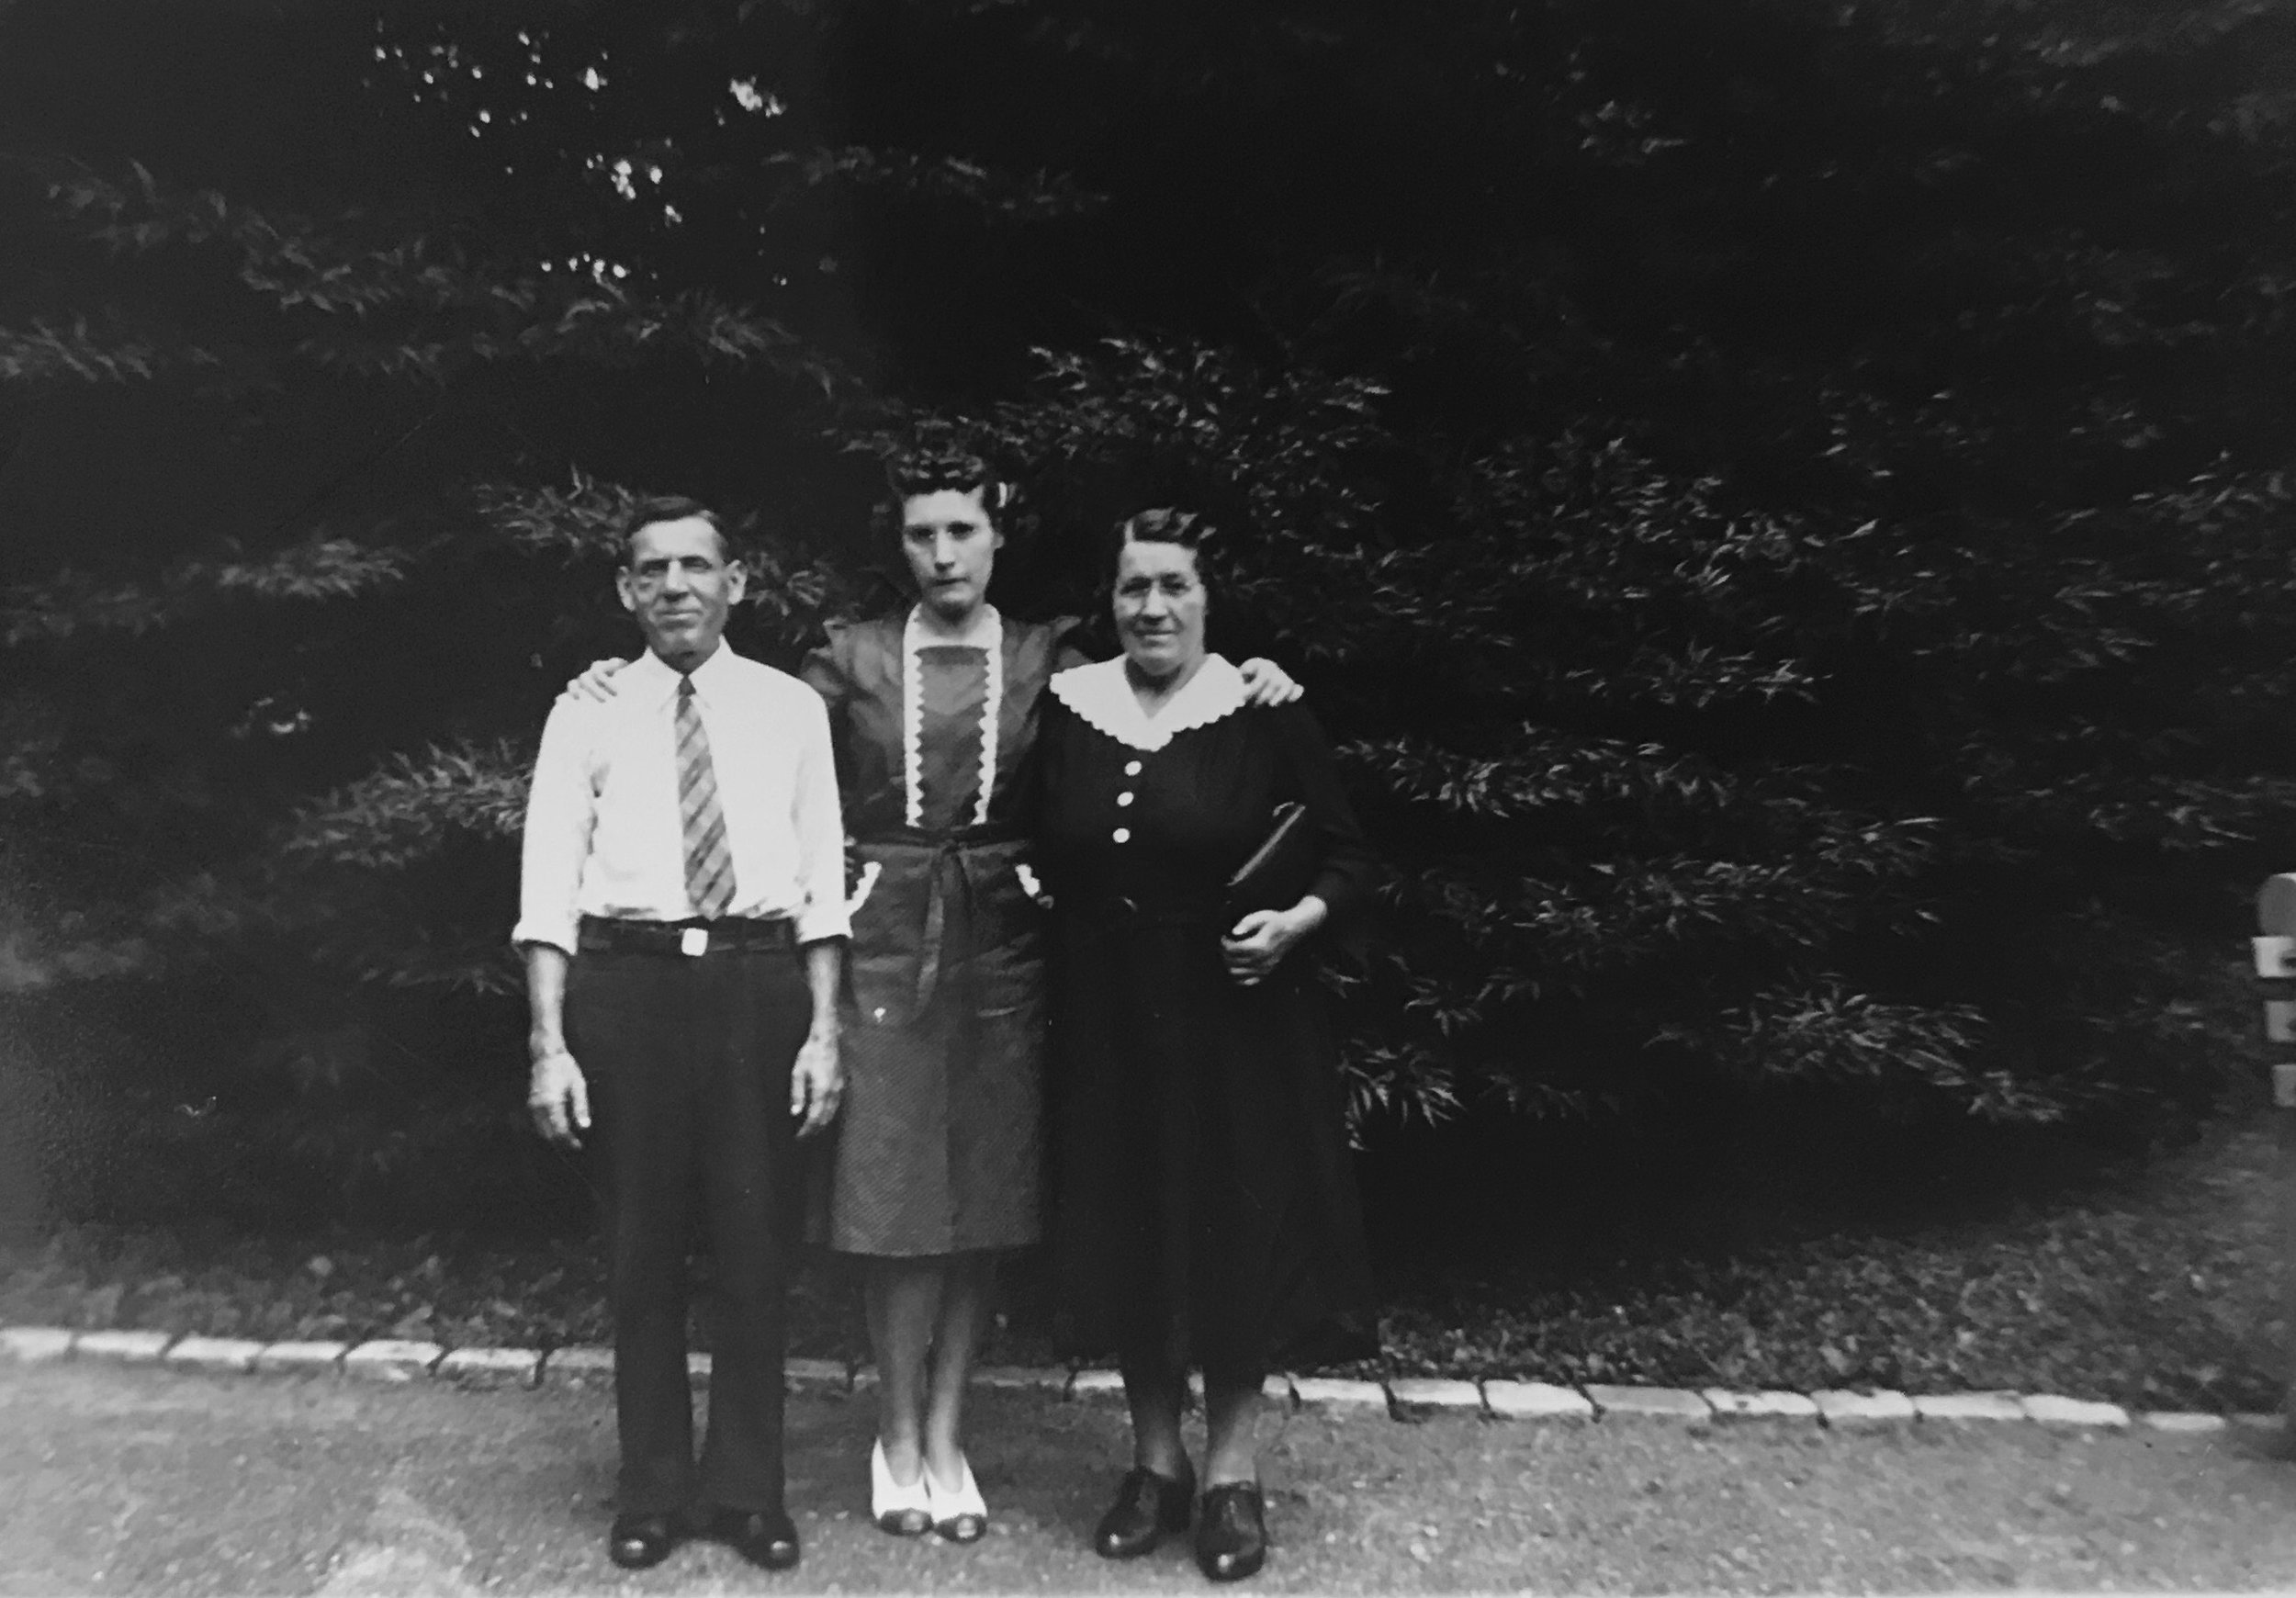 """My grandma wrote """"7/20/41"""" on the back of this photograph."""